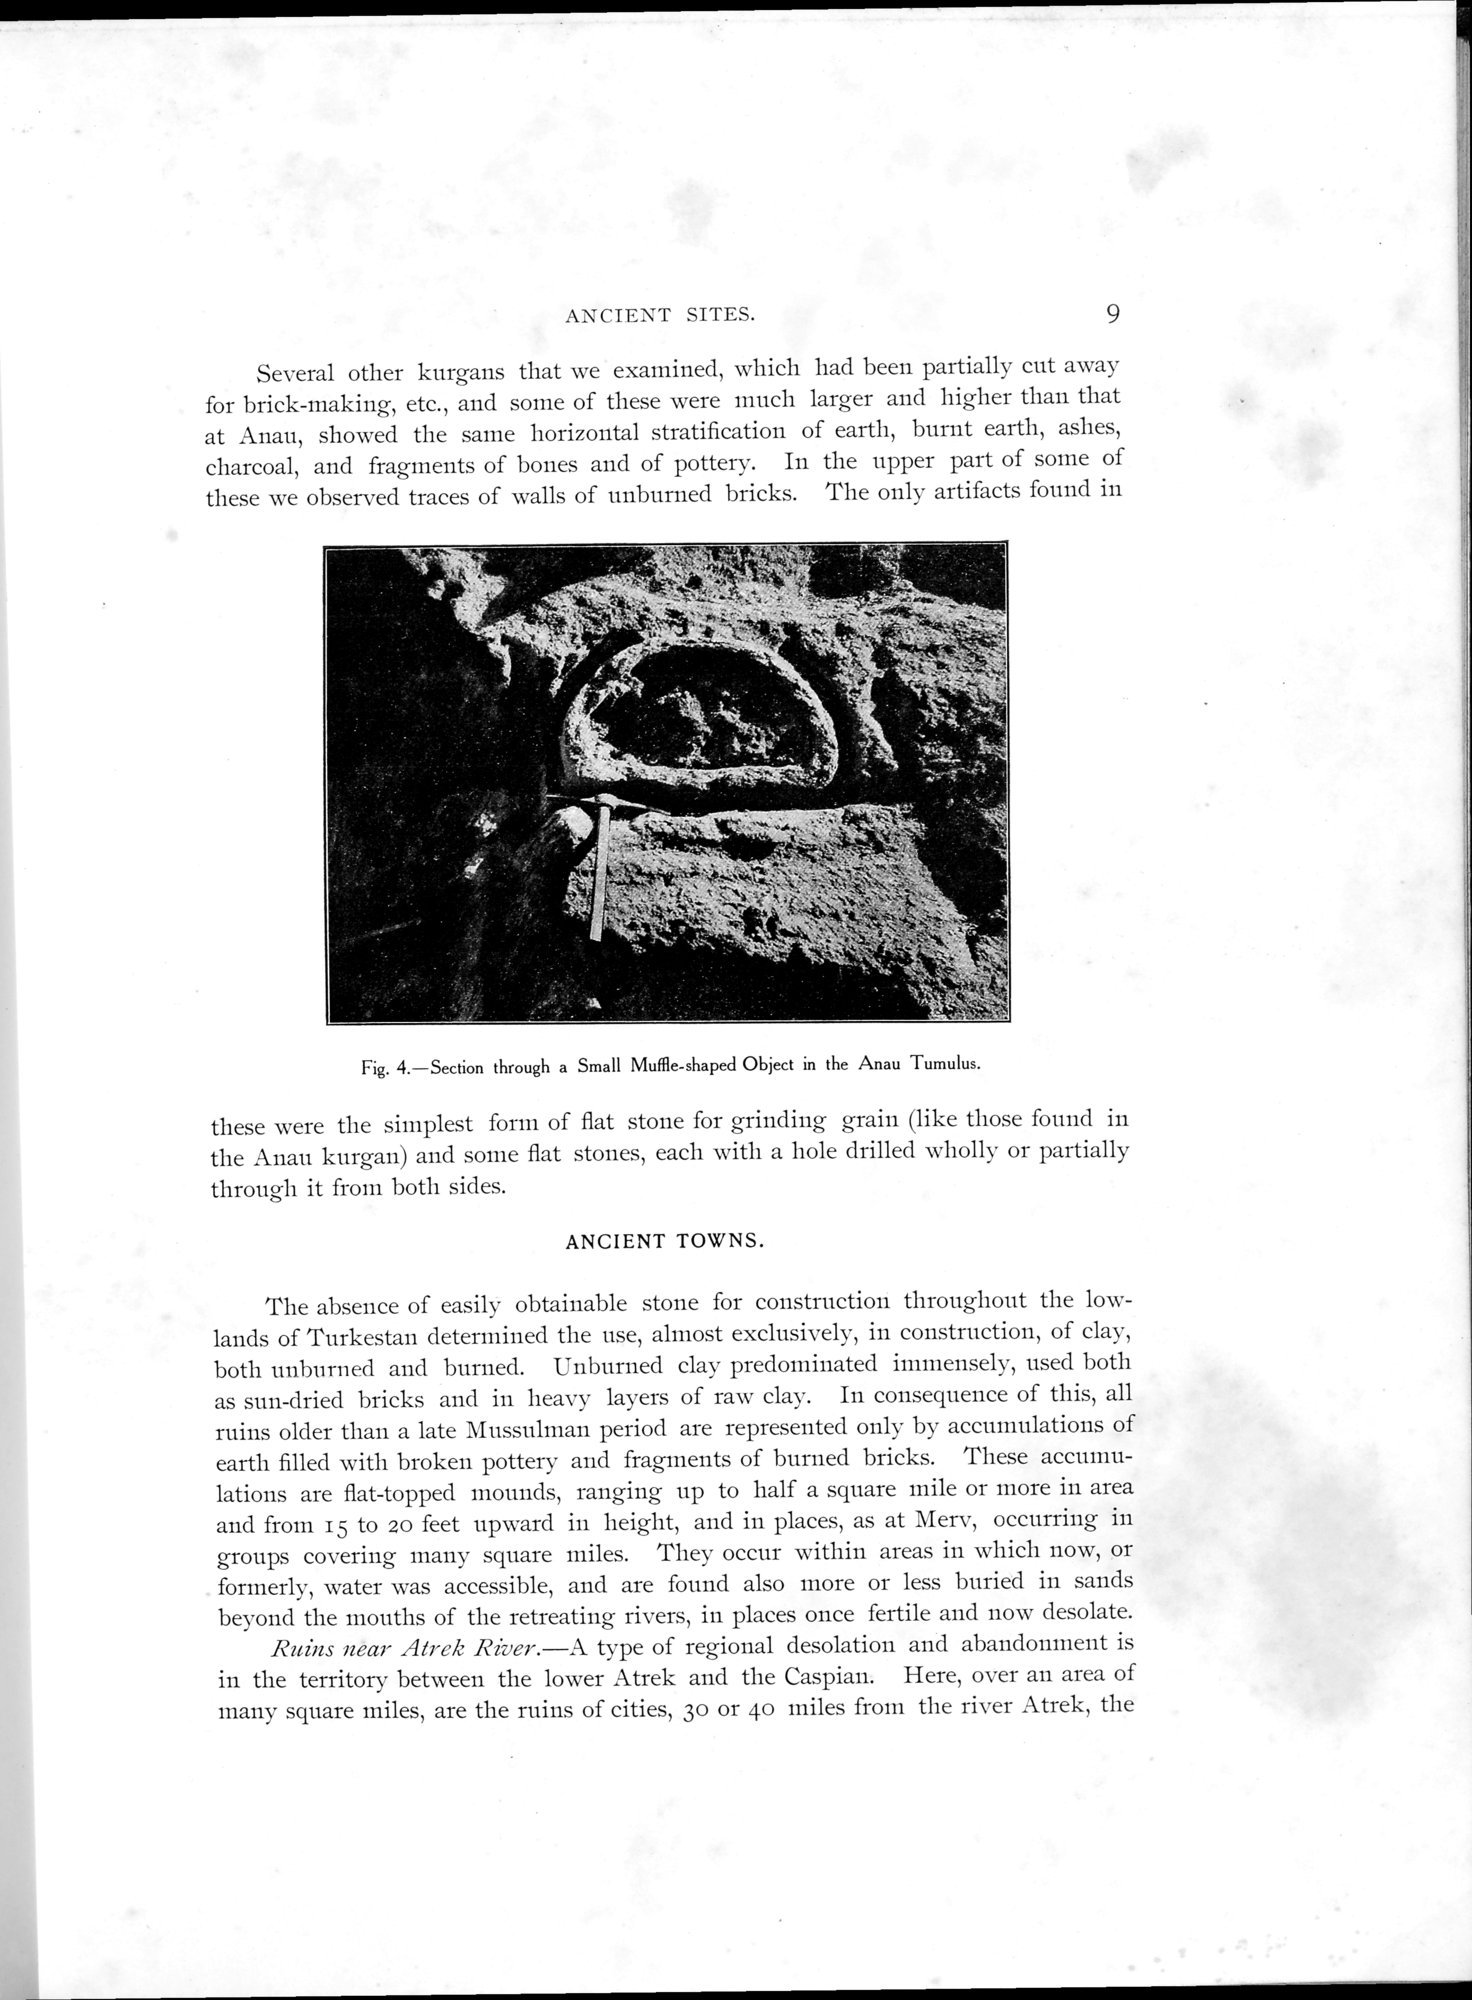 Explorations in Turkestan 1903 : vol.1 / Page 33 (Grayscale High Resolution Image)